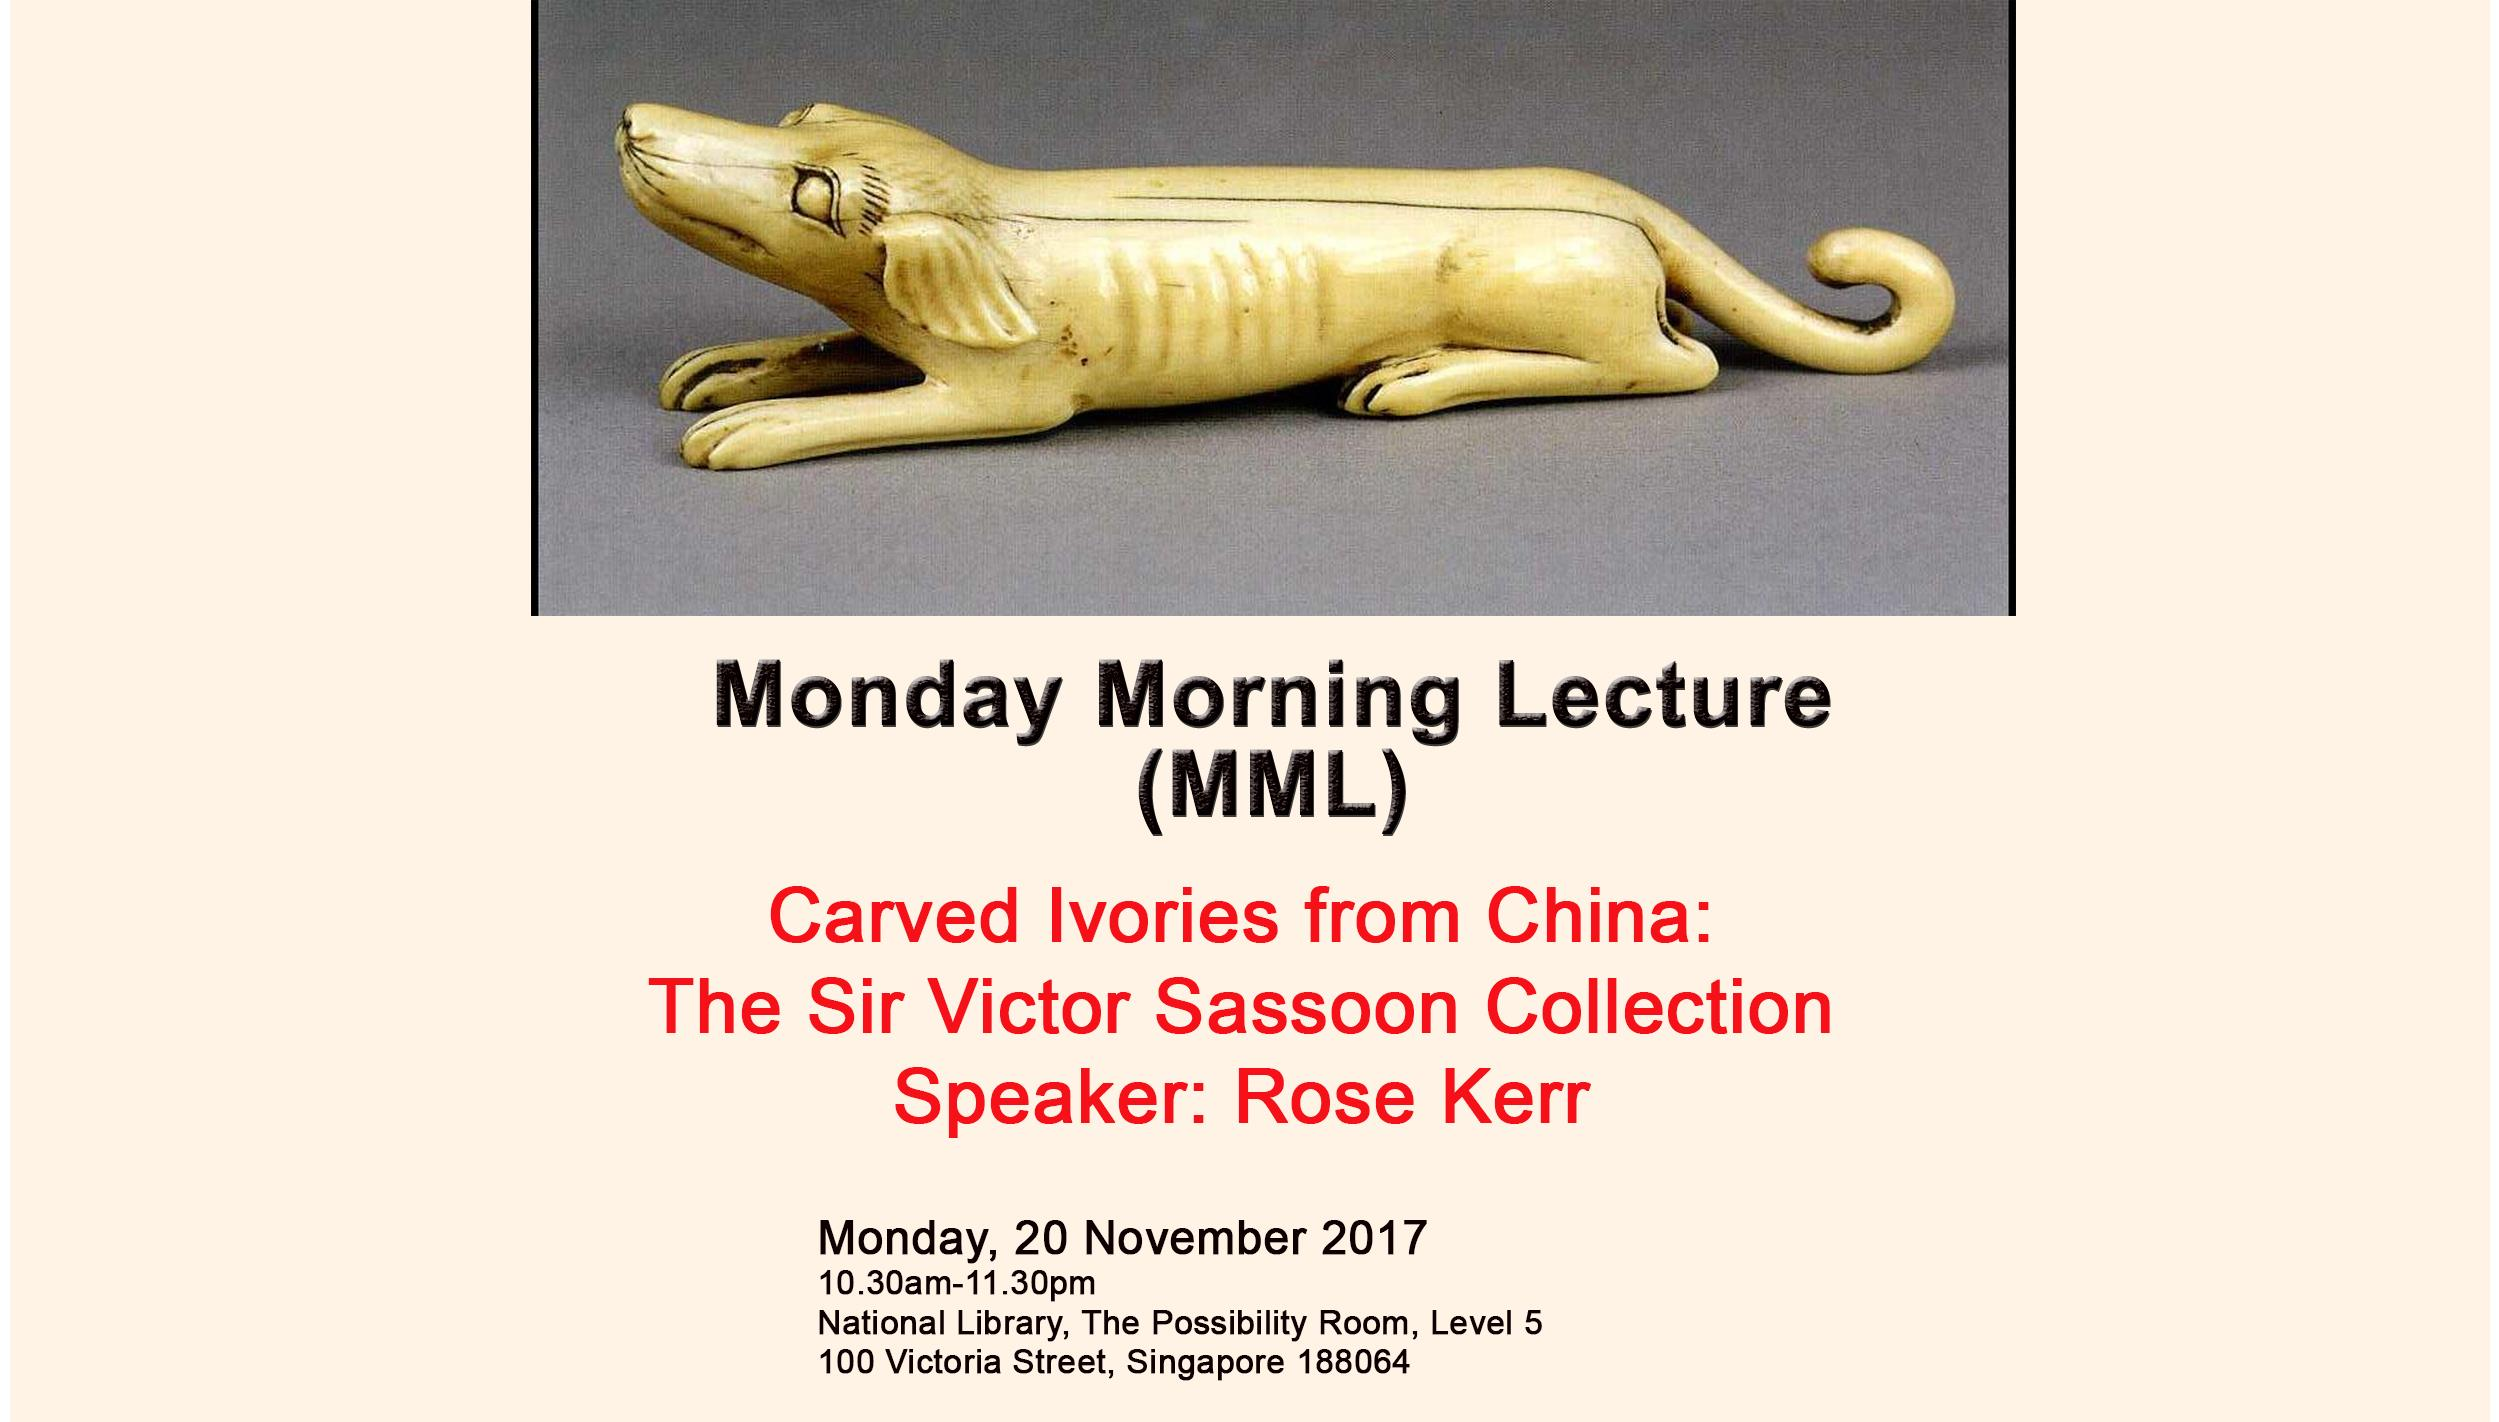 Monday Morning Lecture click here for more information